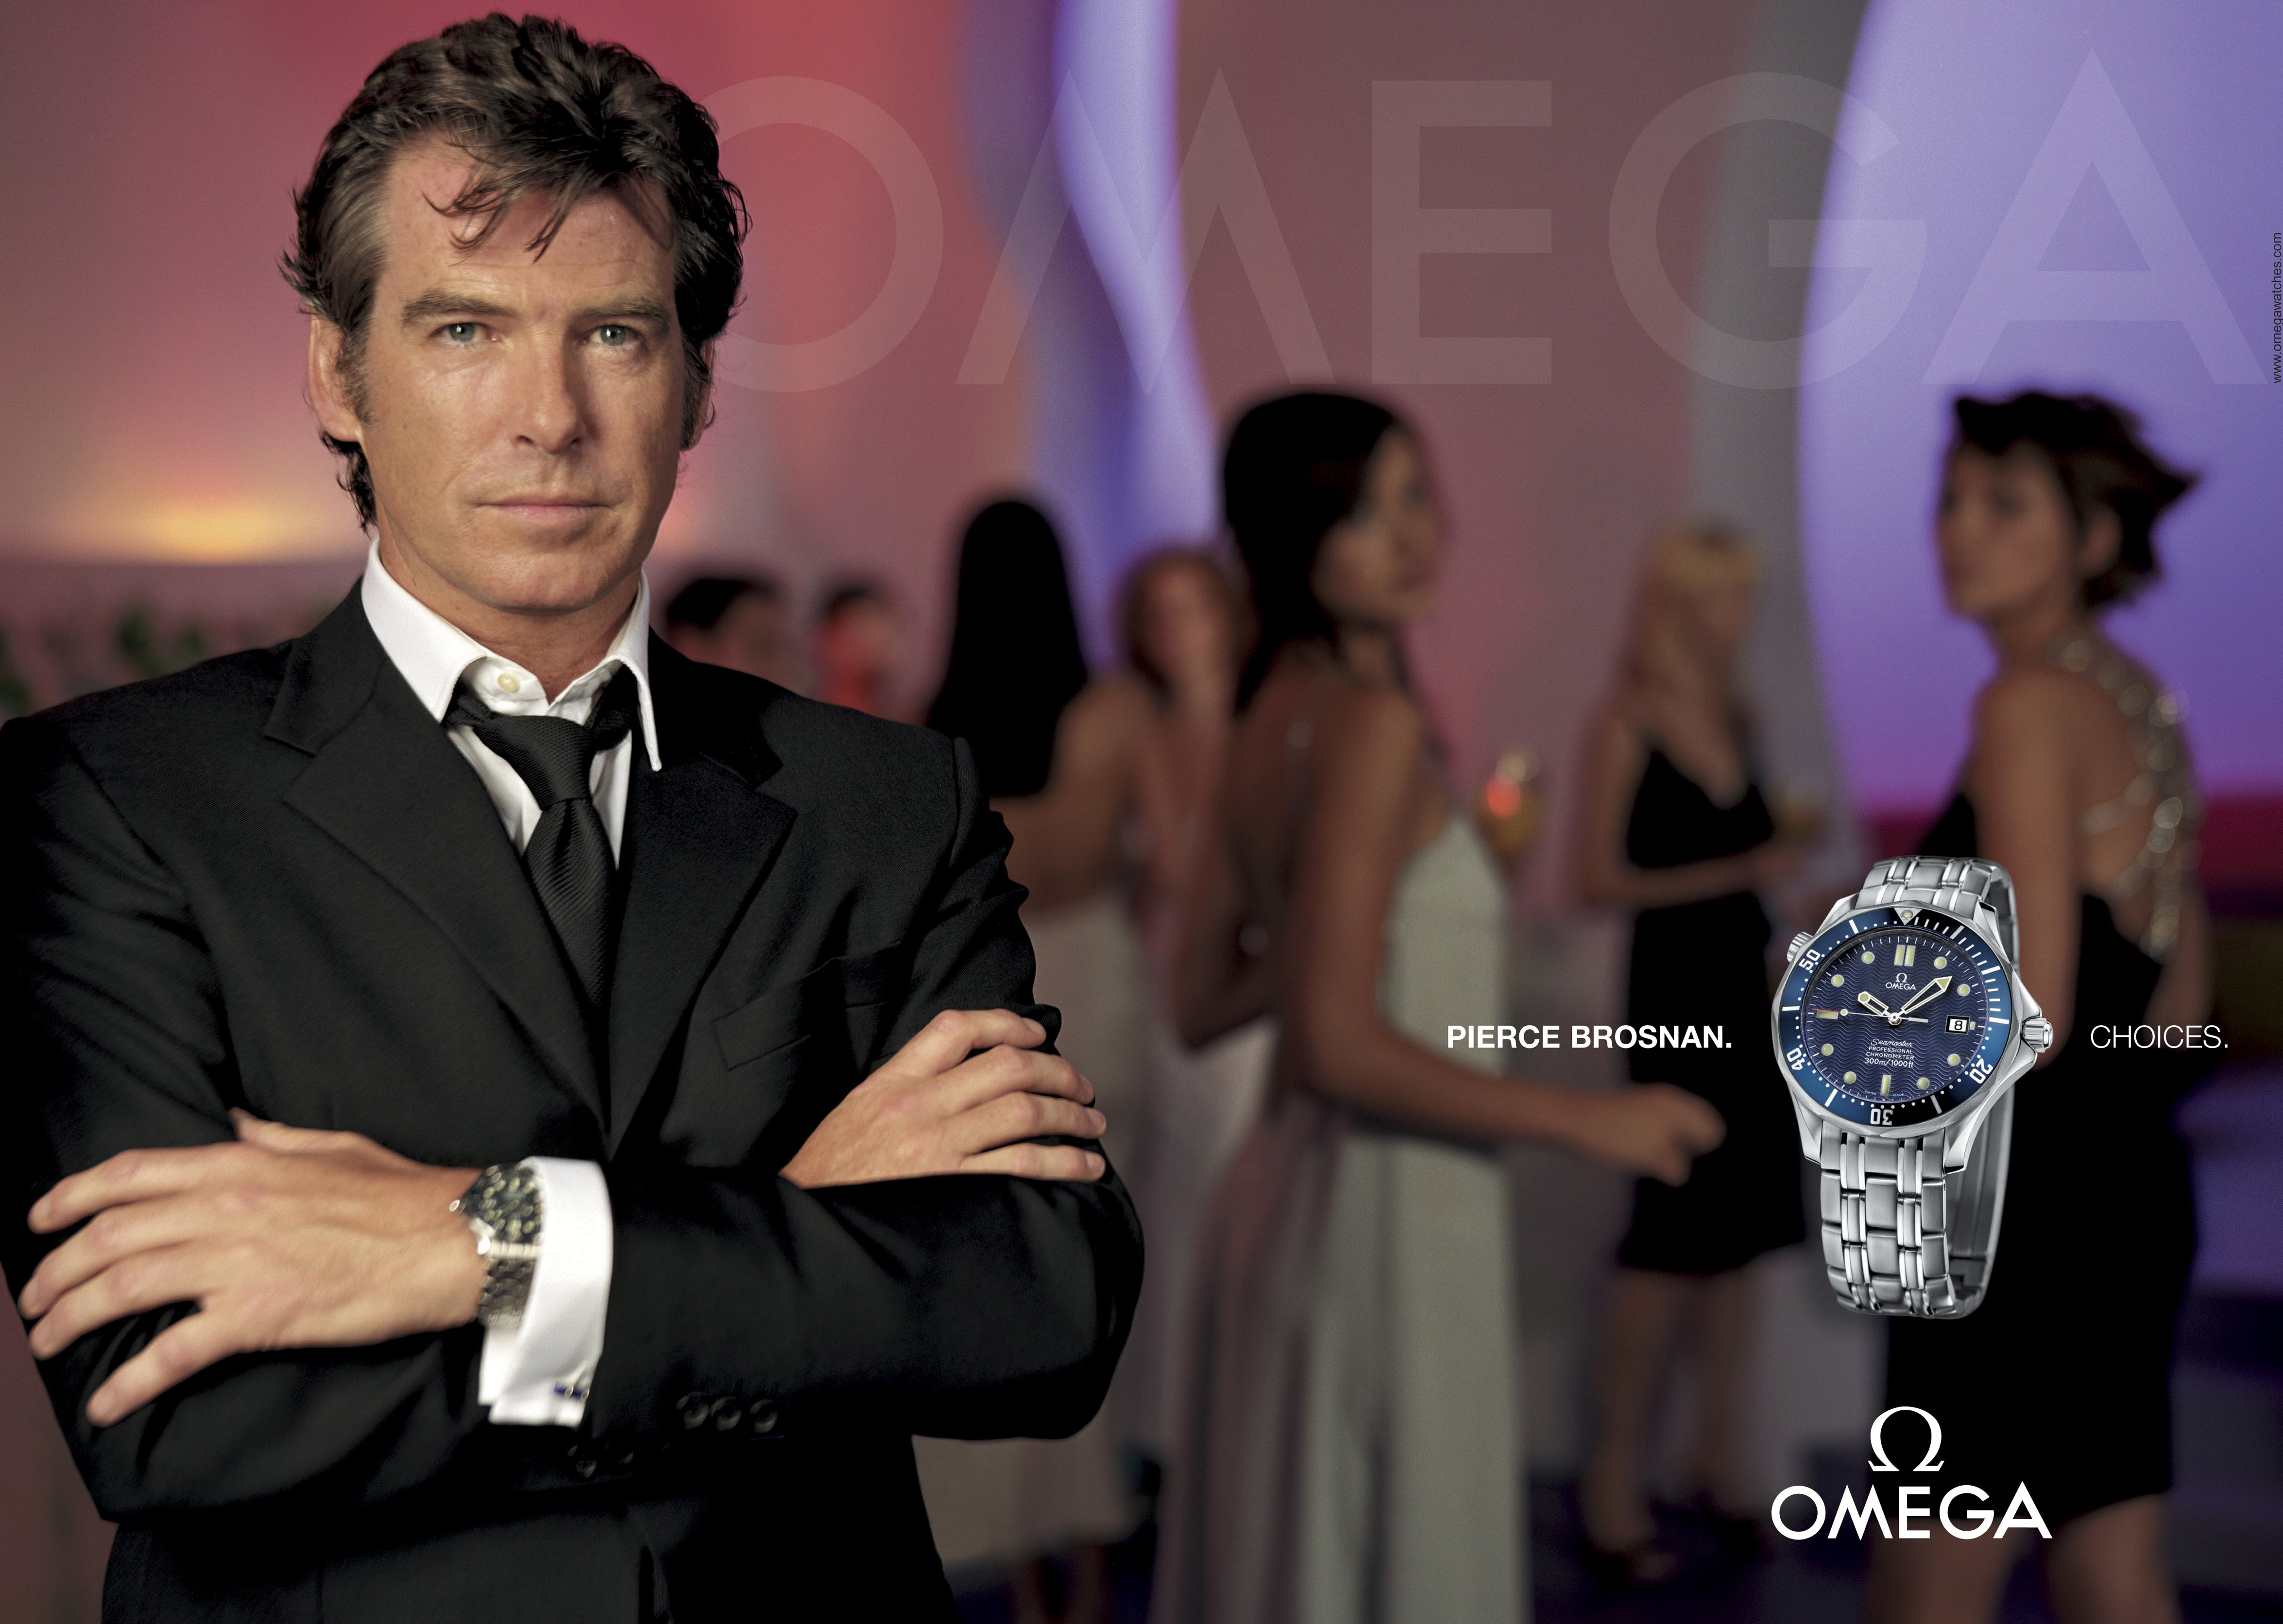 "1c3b593d29a Choices."" The New Omega Advertising Campaign - James Bond Watches Blog"